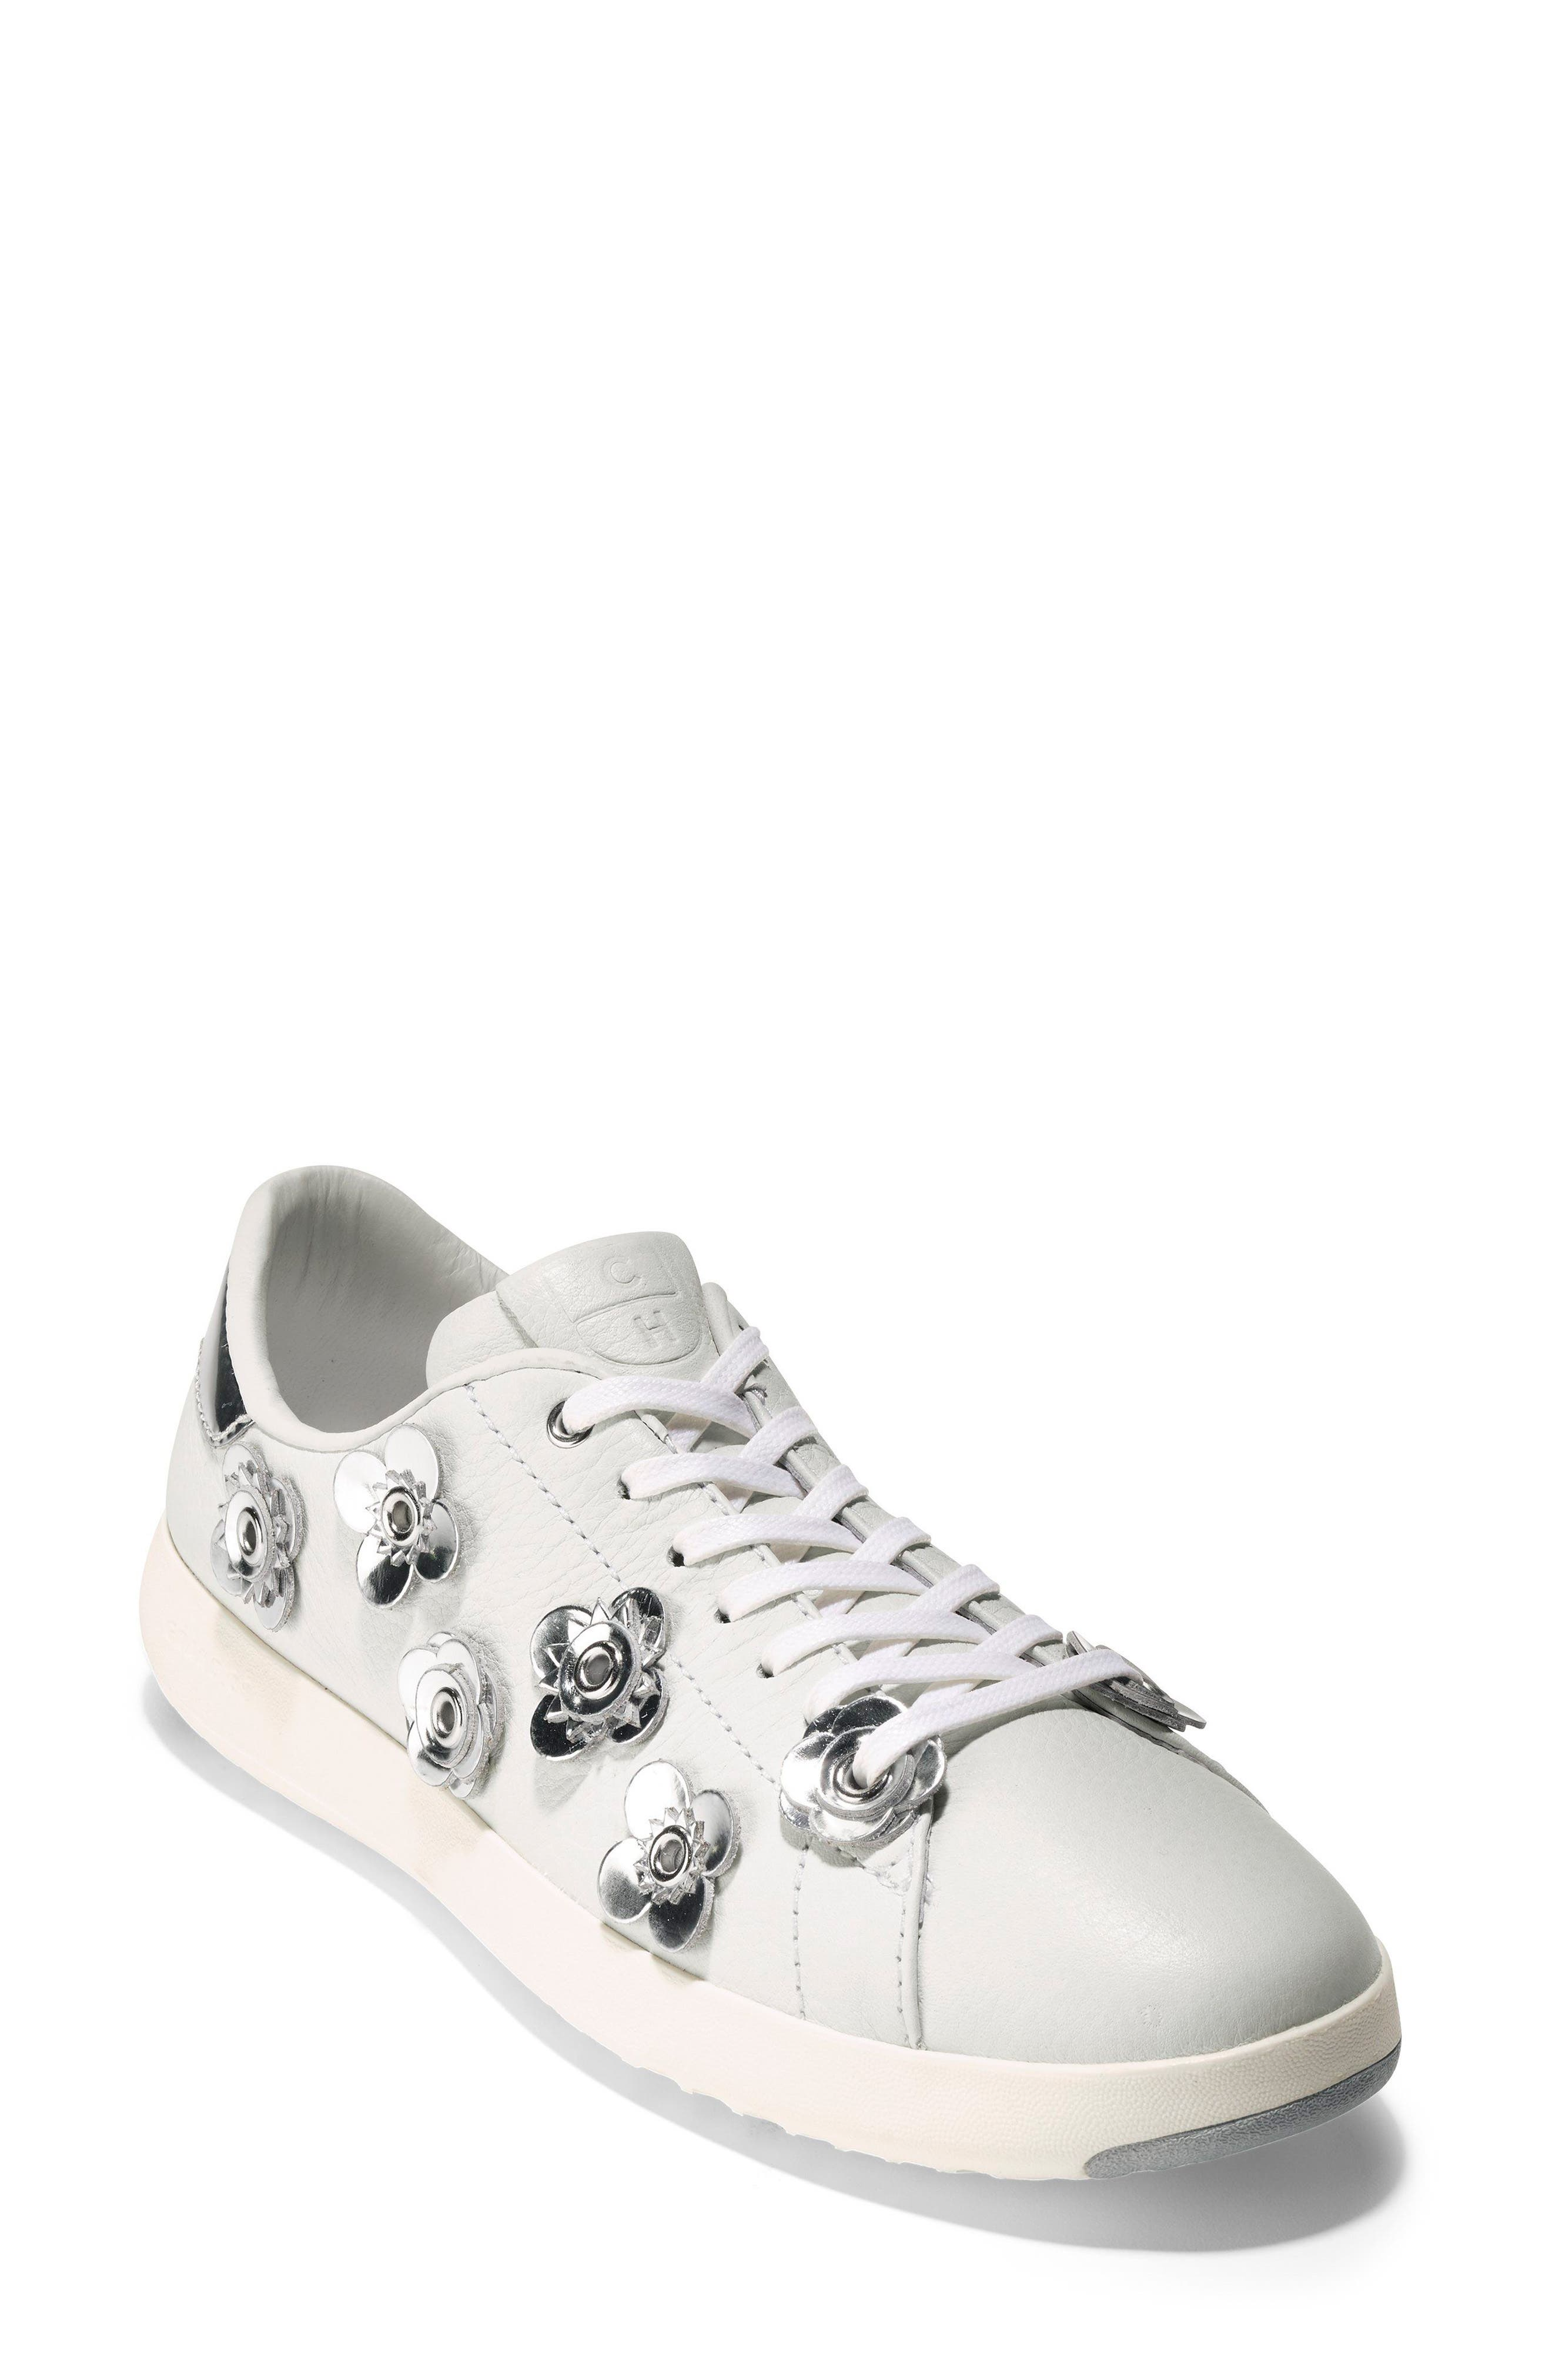 GrandPro Tennis Sneaker,                         Main,                         color, White Leather